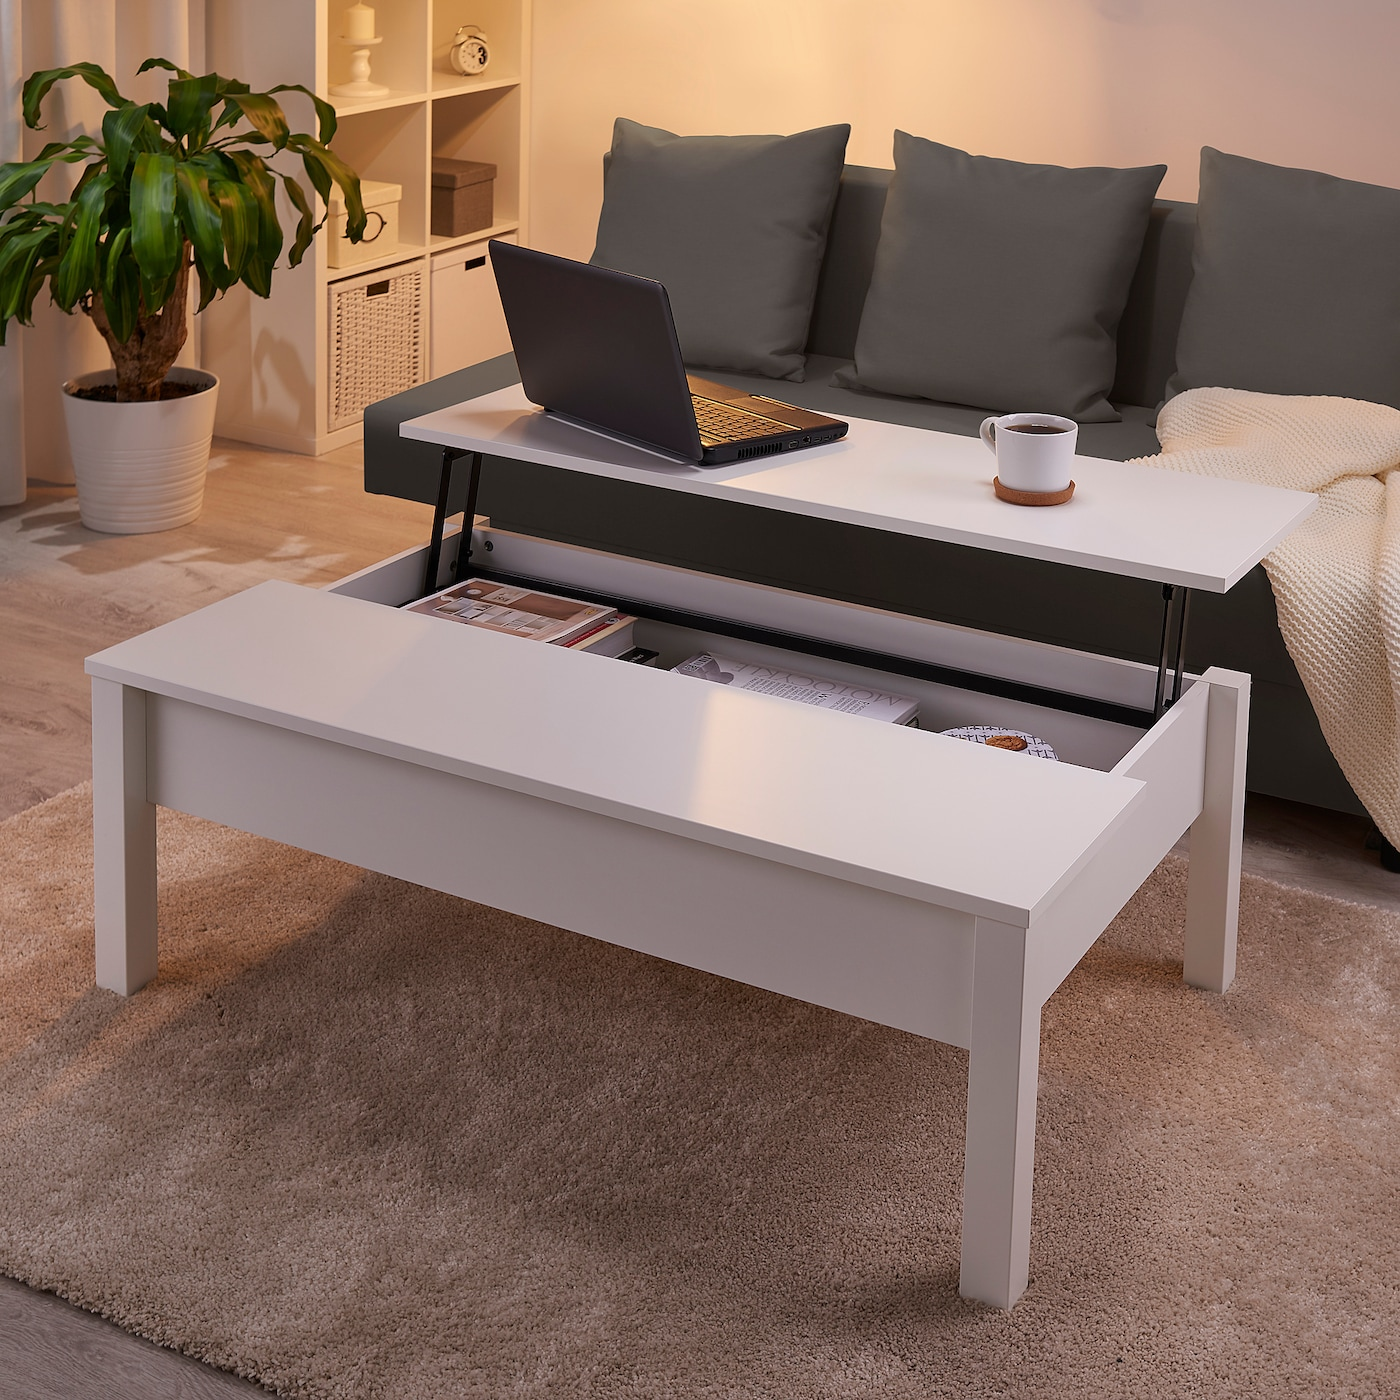 Trulstorp Coffee Table White 45 1 4x27 1 2 Ikea